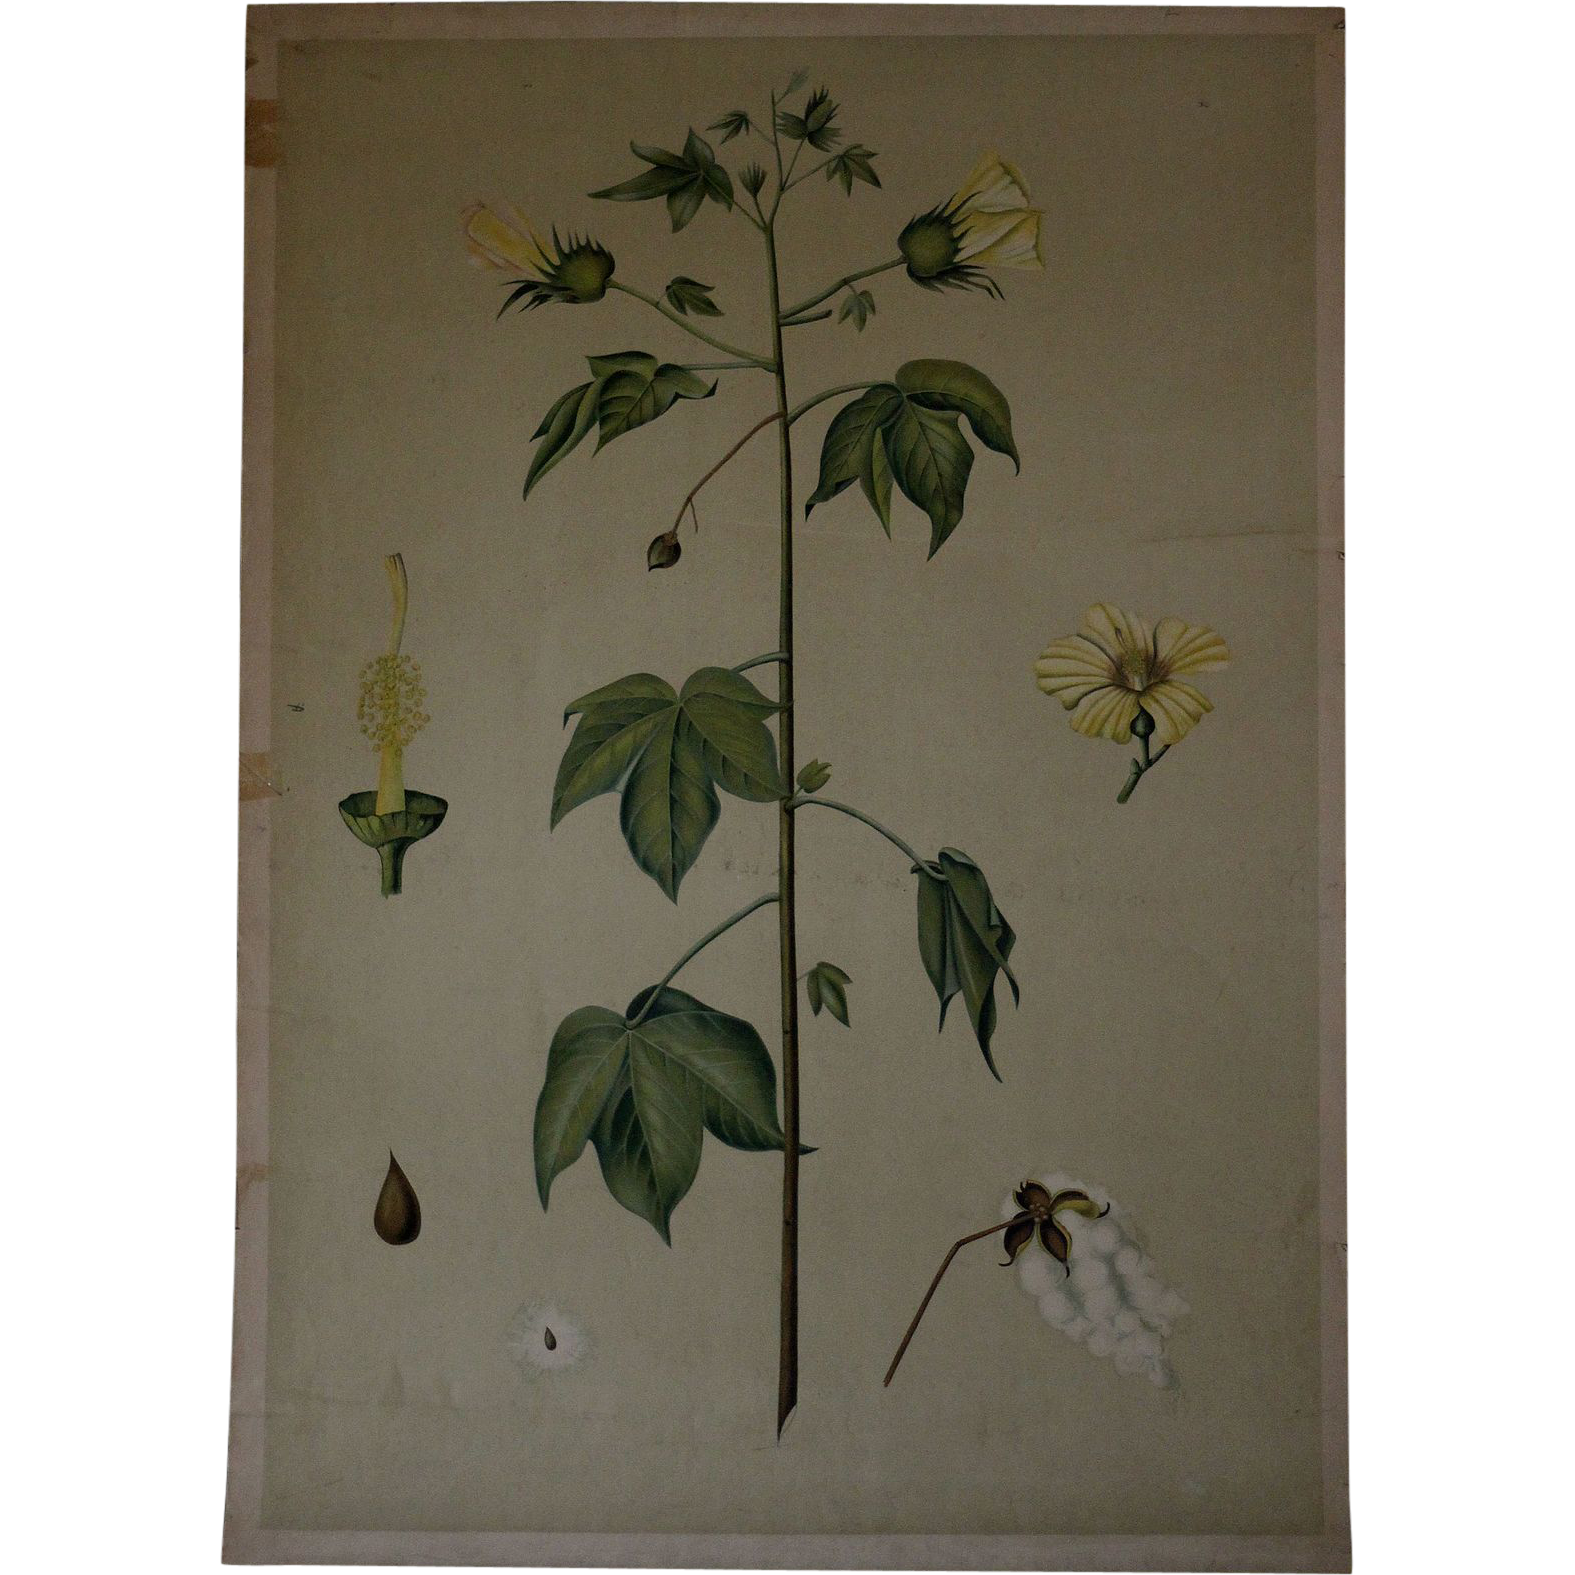 Antique Czech Botany School Teaching Chart - 19th Century Botanical Poster